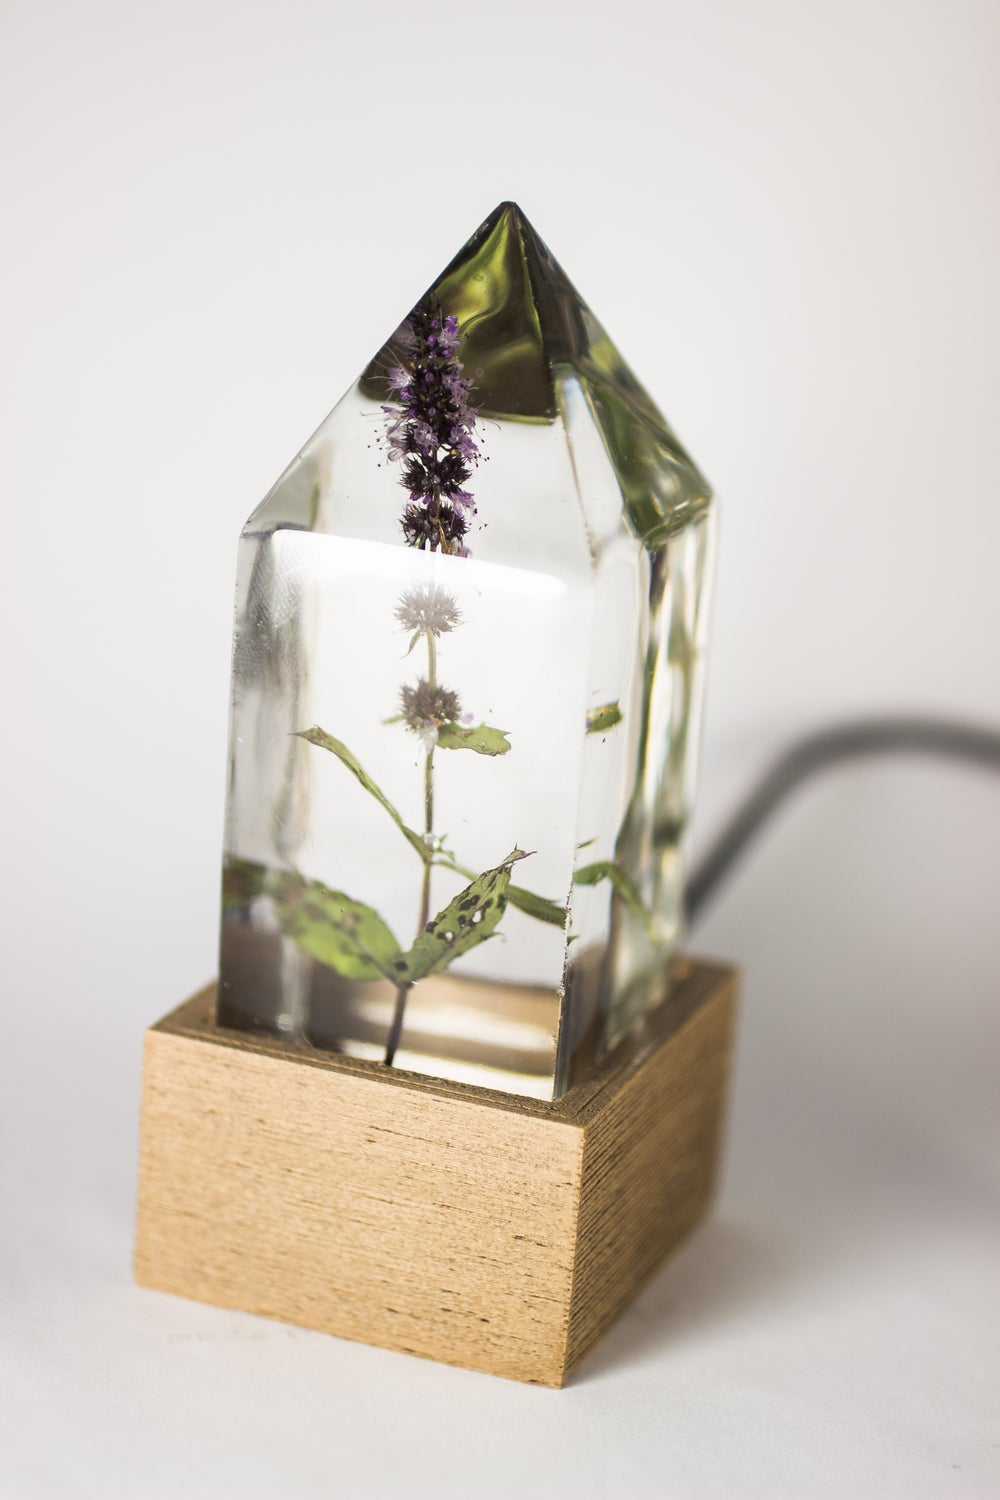 Image of Peppermint (Mentha x piperita) - Floral Night-Light #1